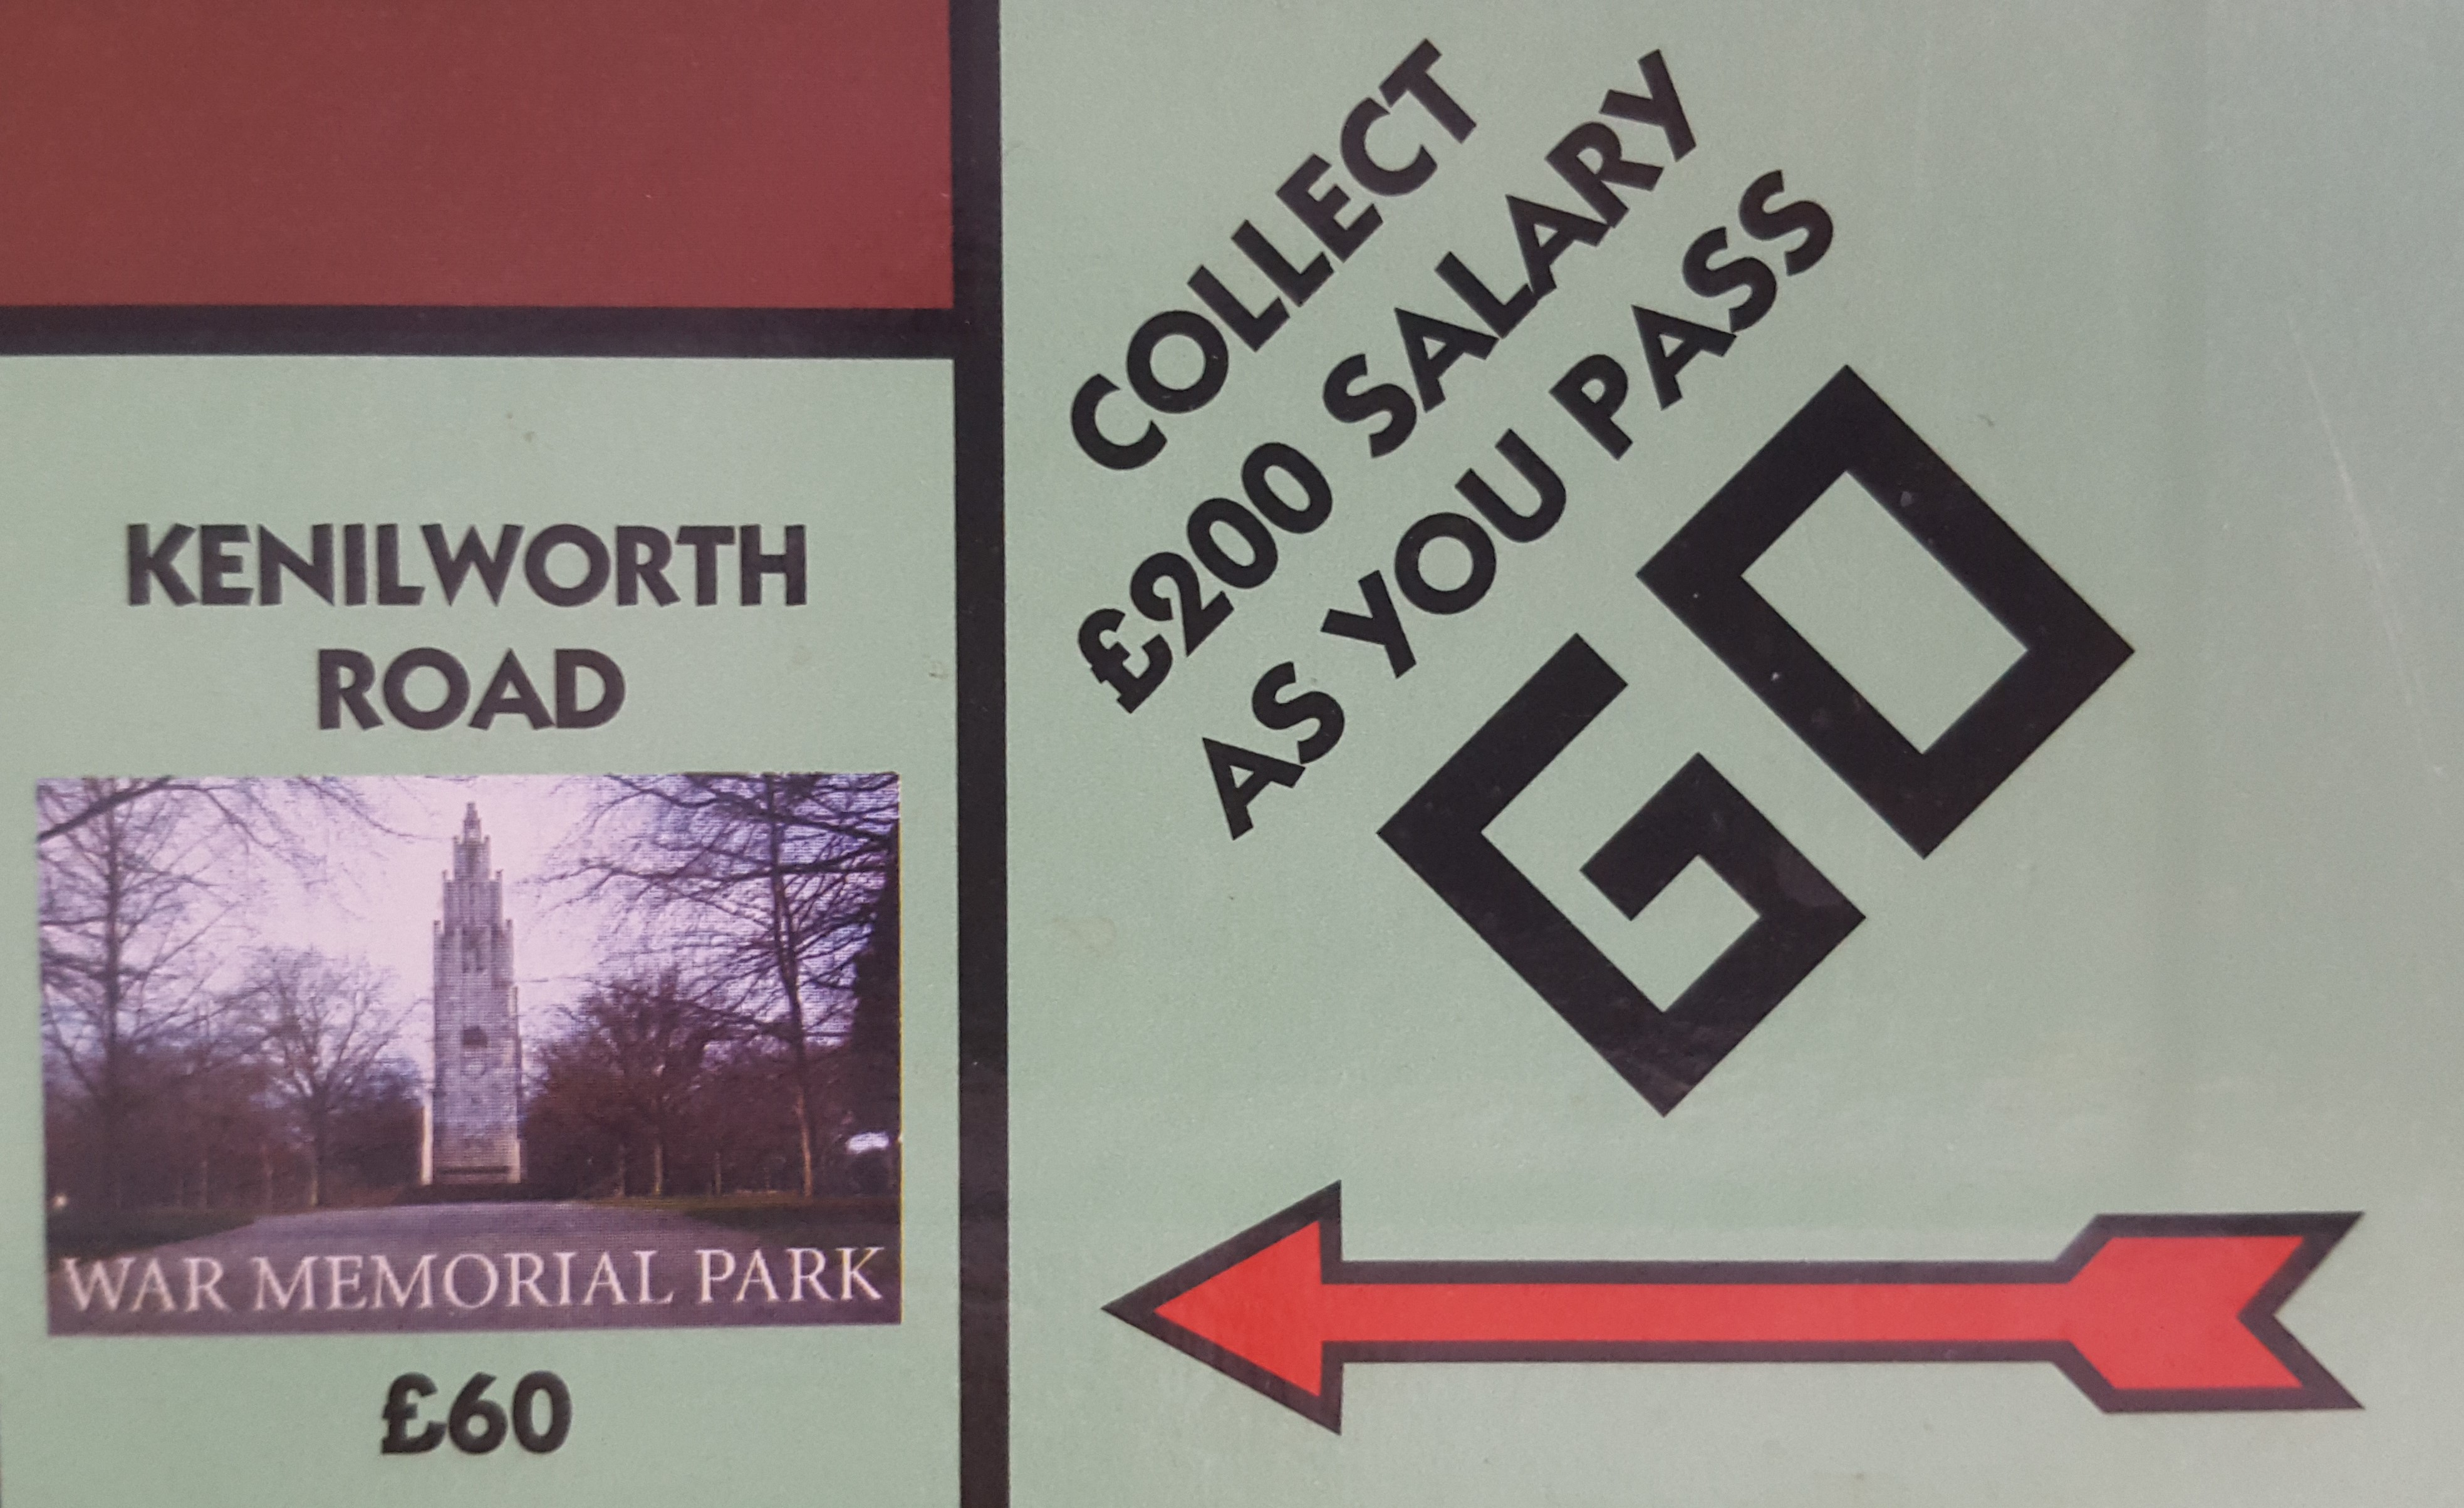 Kenilworth Road for less than a third of salary? Yes please!